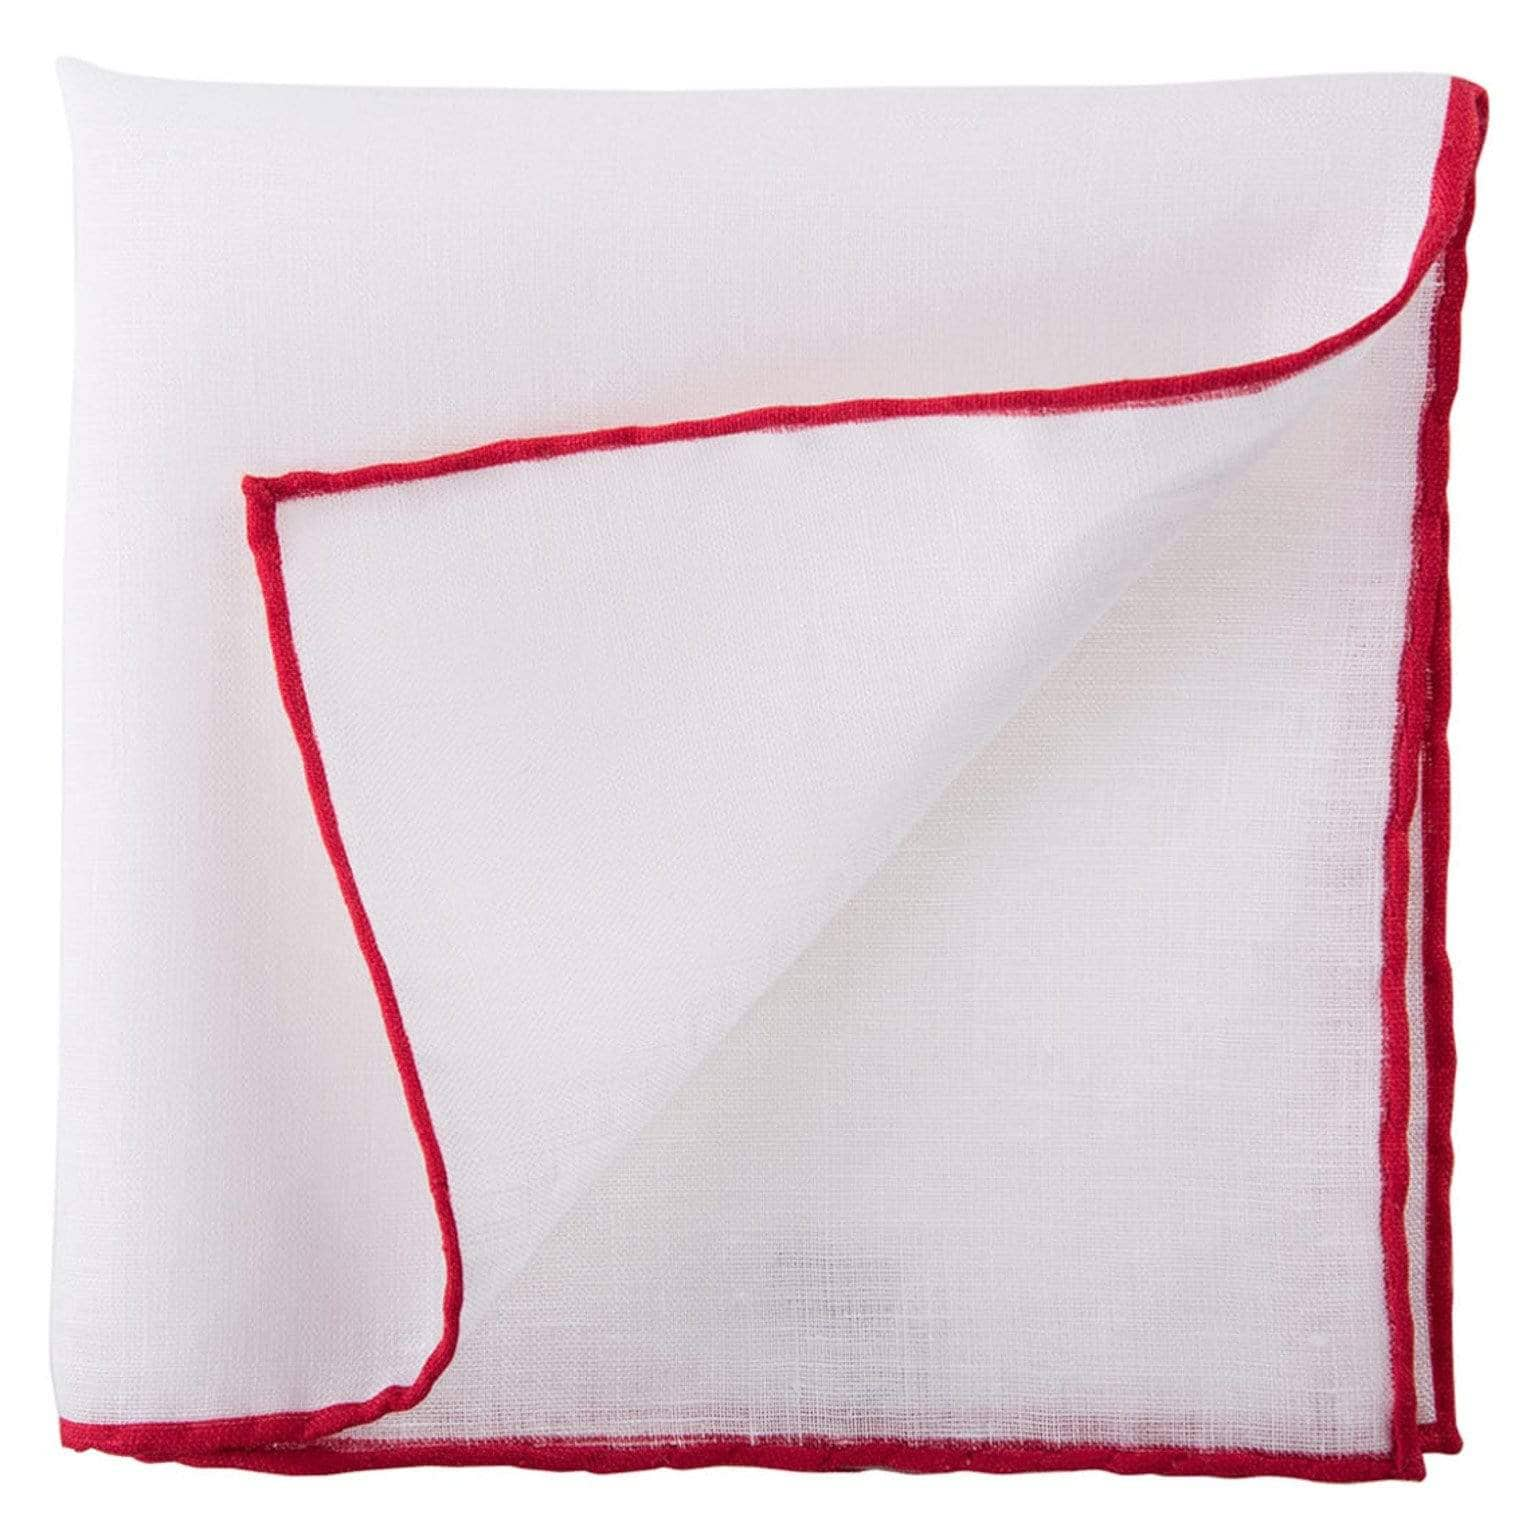 White Linen Pocket Square - Red Hand Rolled Hems